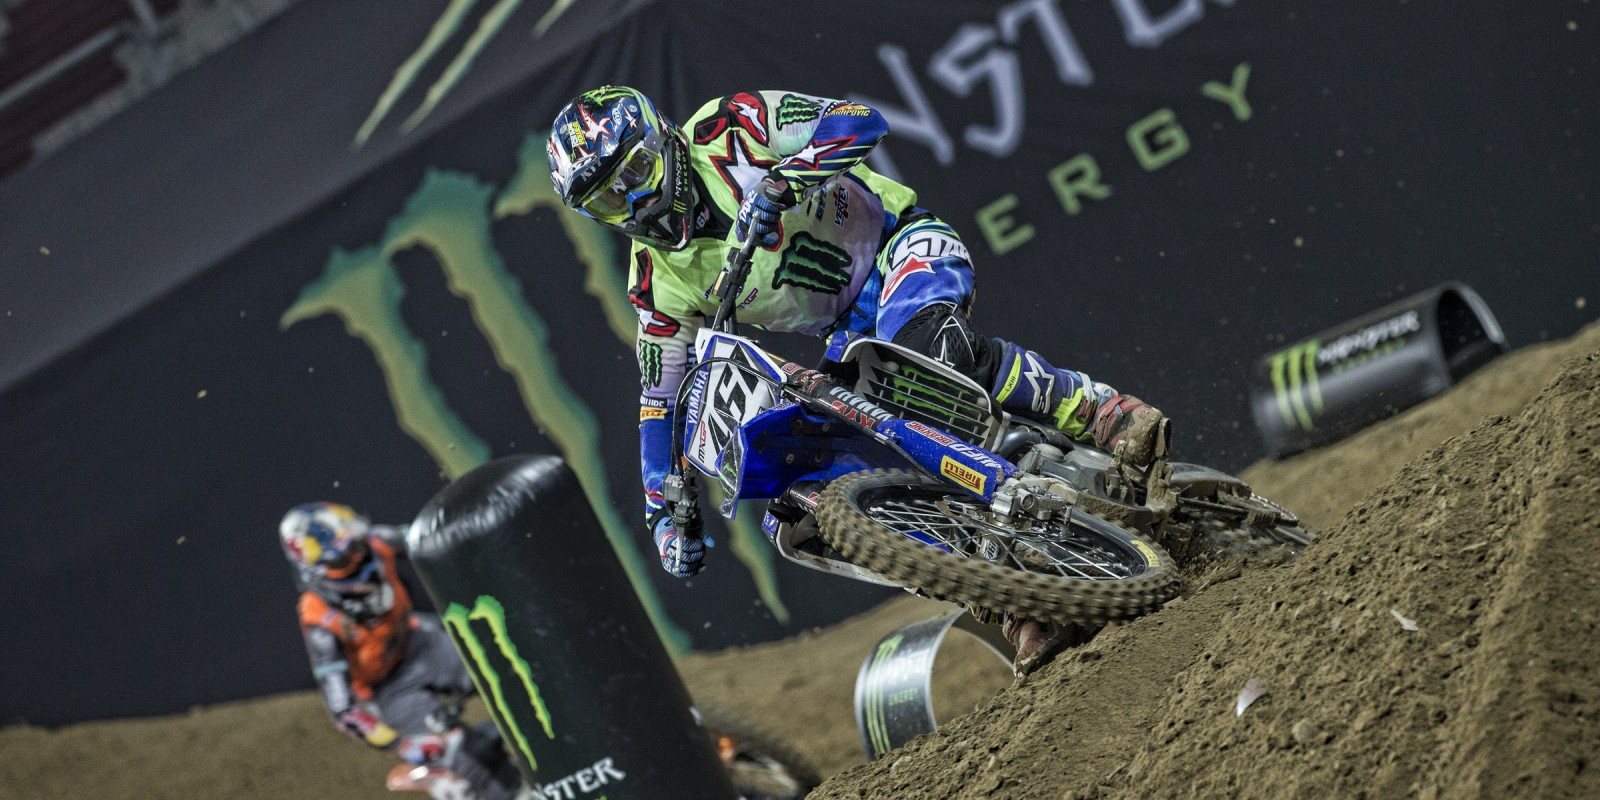 Images from the 2016 Supercross in Gelsenkirchen, Germany